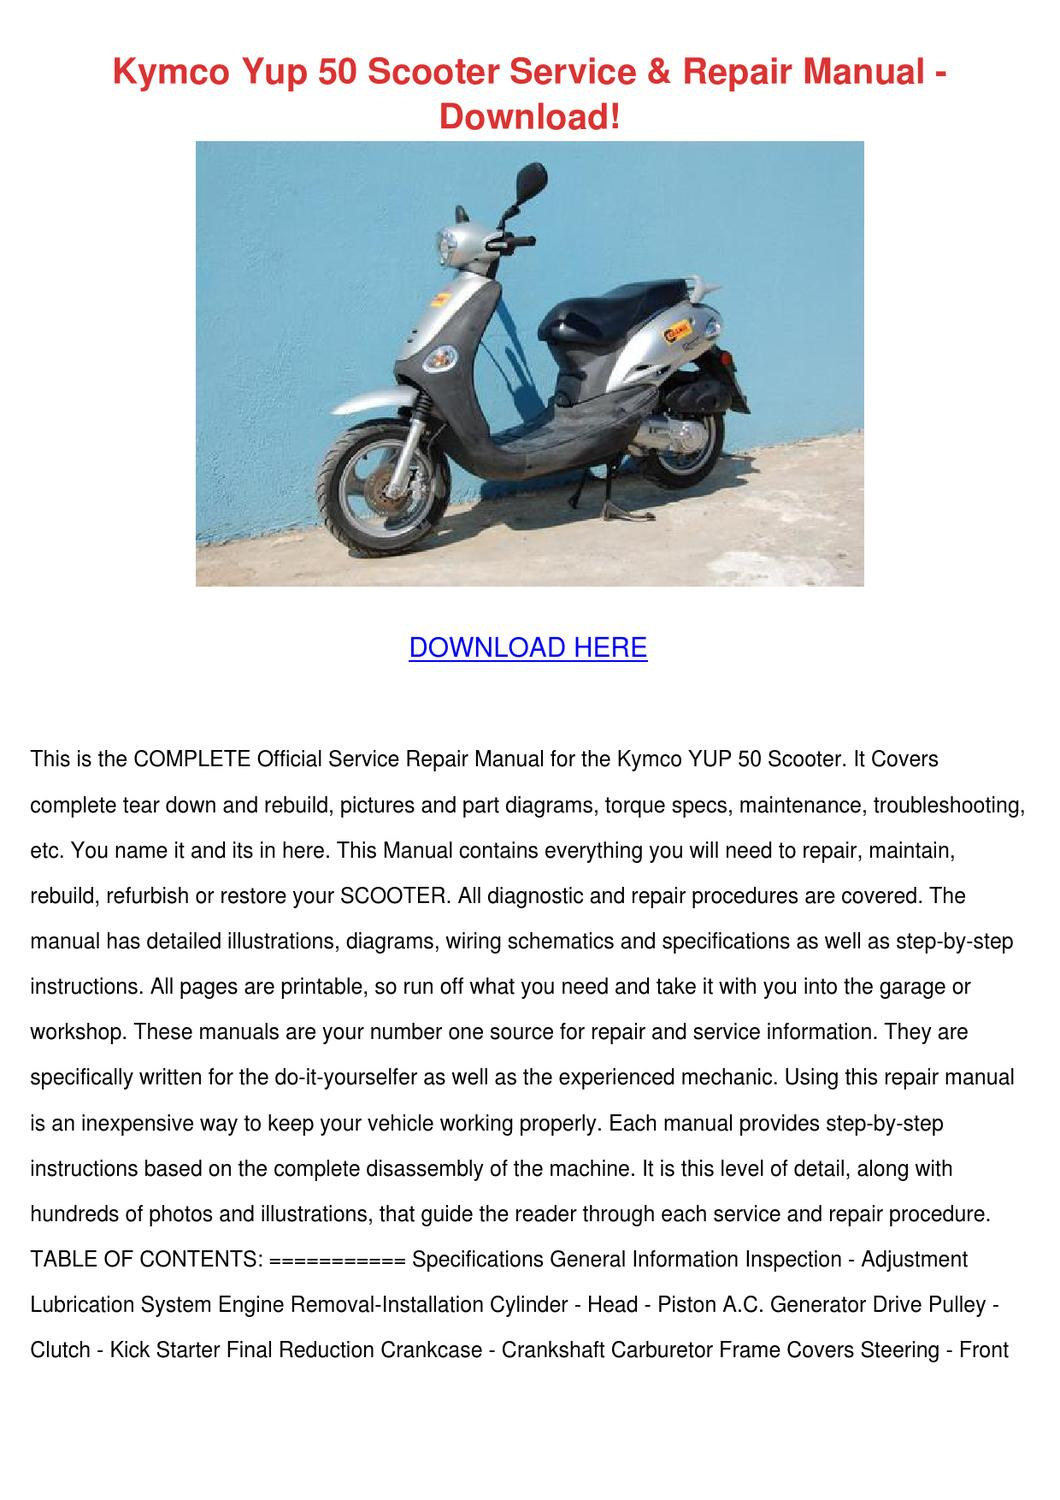 Kymco Yup 50 Scooter Service Repair Manual Do By Kaihawley